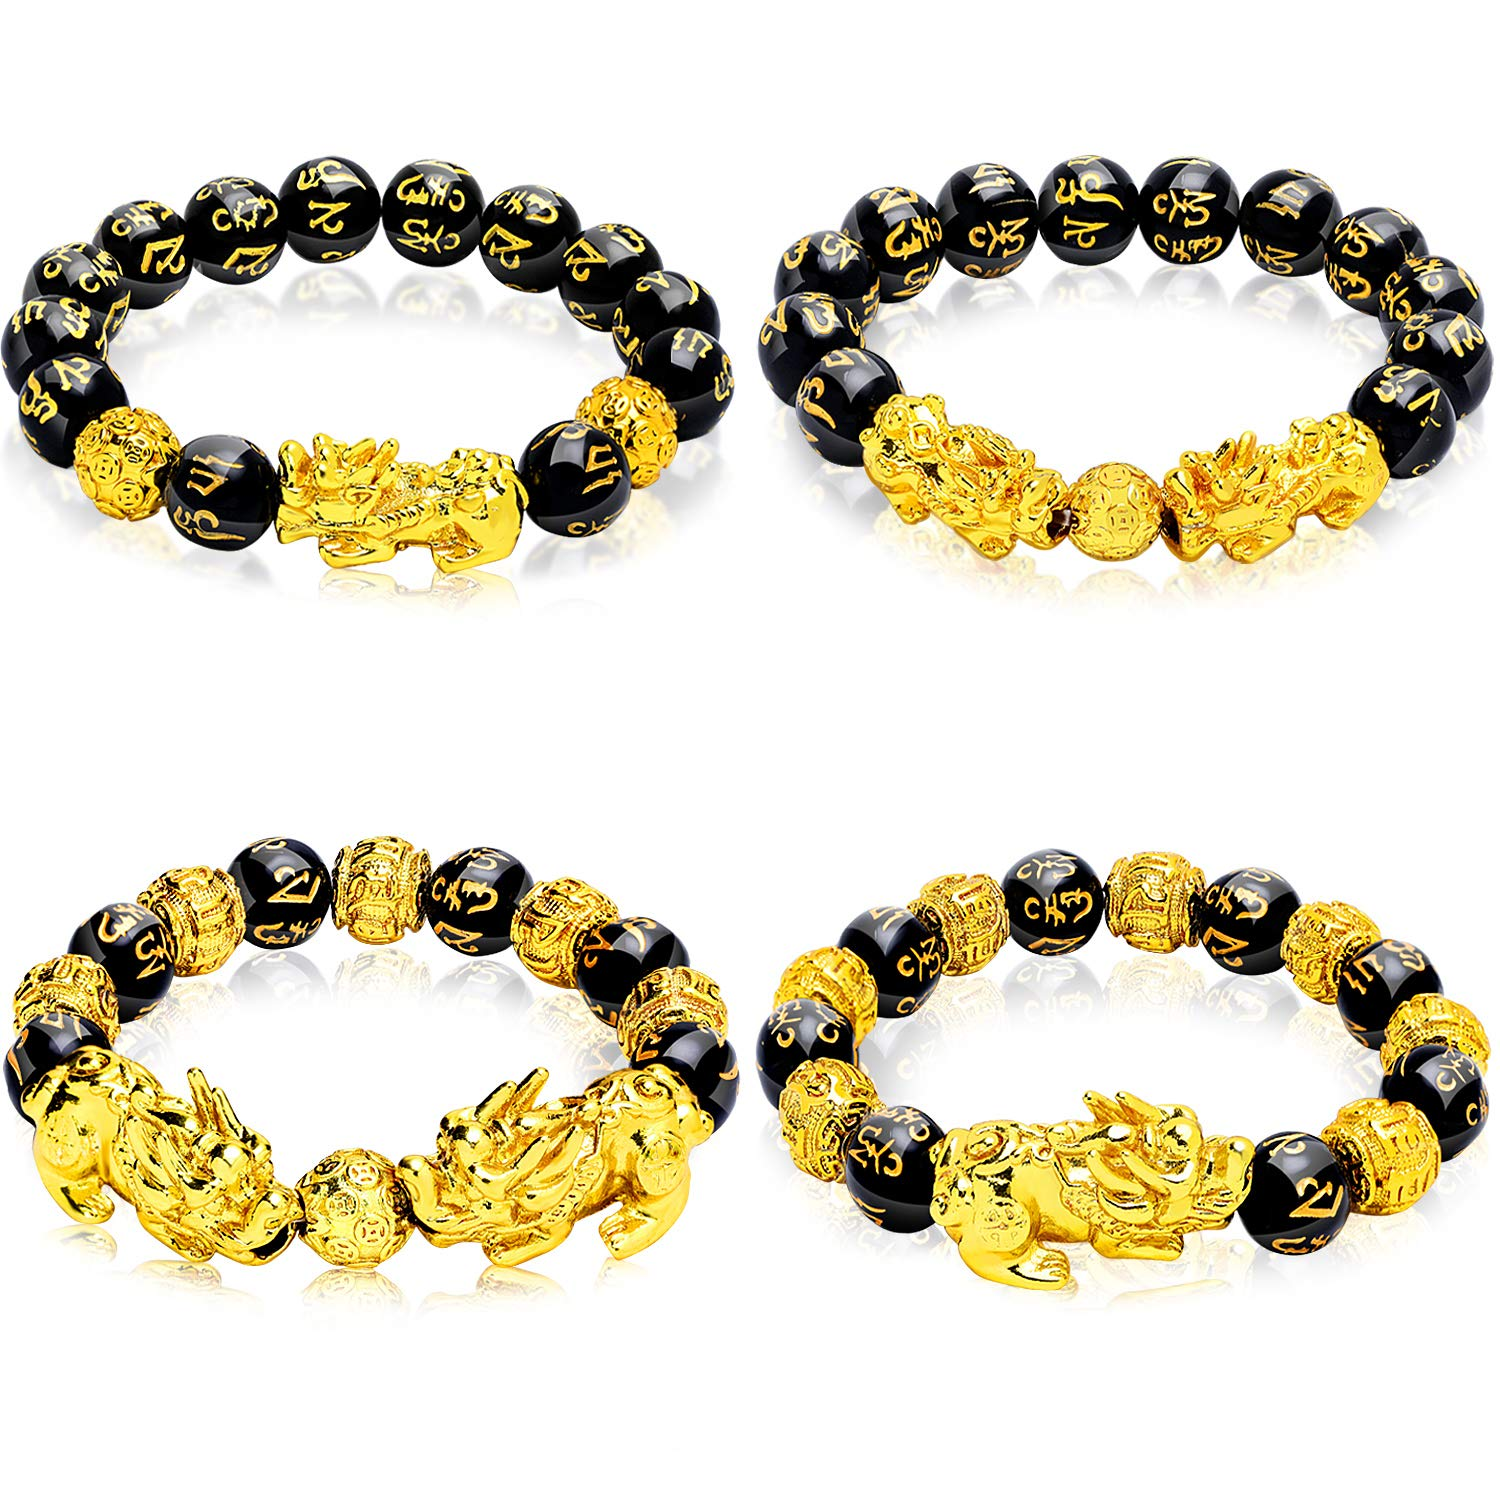 Hicarer 4 Pieces Feng Shui Bracelets Mantra Amulet Bead Bracelets with Gold Plated Pi Xiu/Pi Yao and Copper Coins Bead Bracelelts for Good Luck Wealth